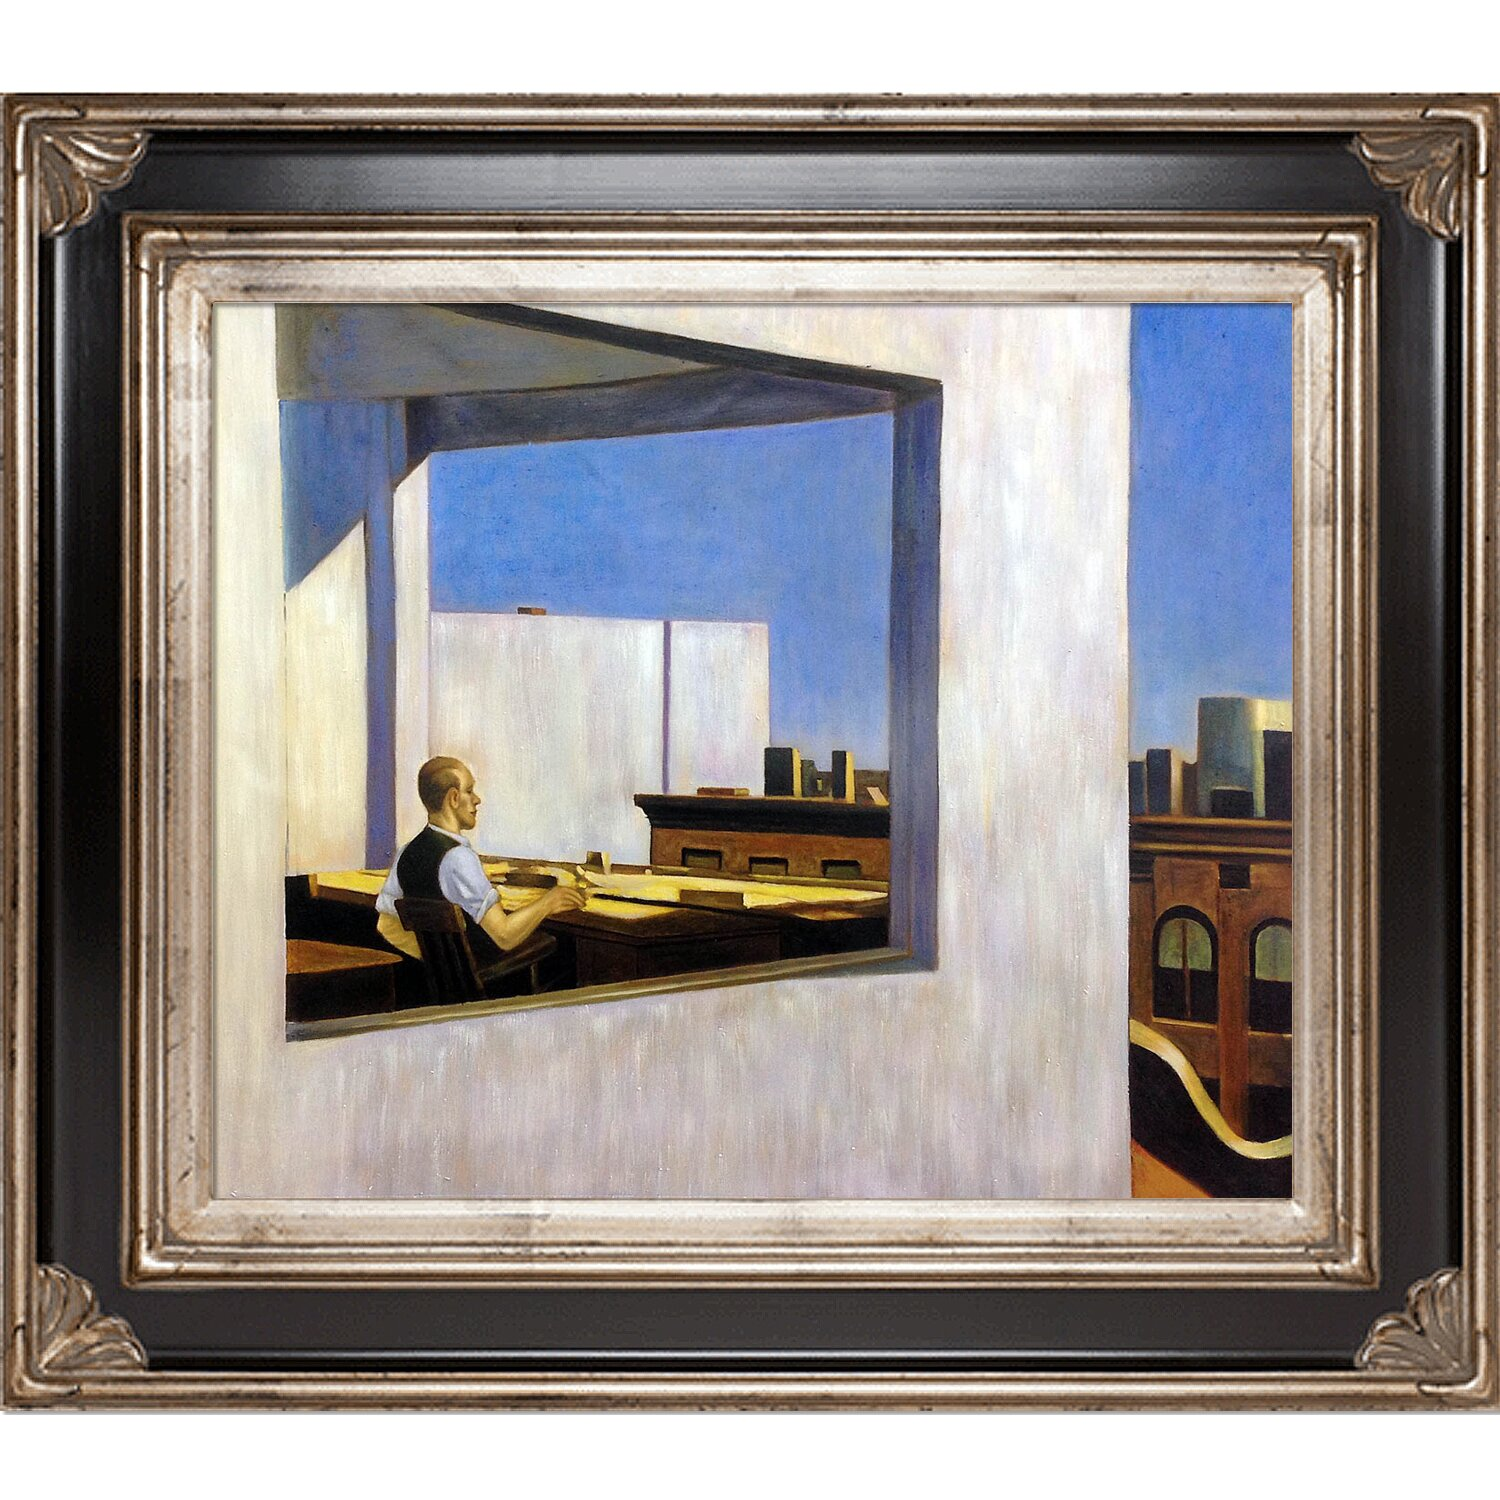 https://secure.img1.wfcdn.com/lf/maxsquare/hash/39020/23617475/1/La-Pastiche-Office-in-a-Small-City-1953-by-Edward-Hopper-Framed-Painting-Print.jpg